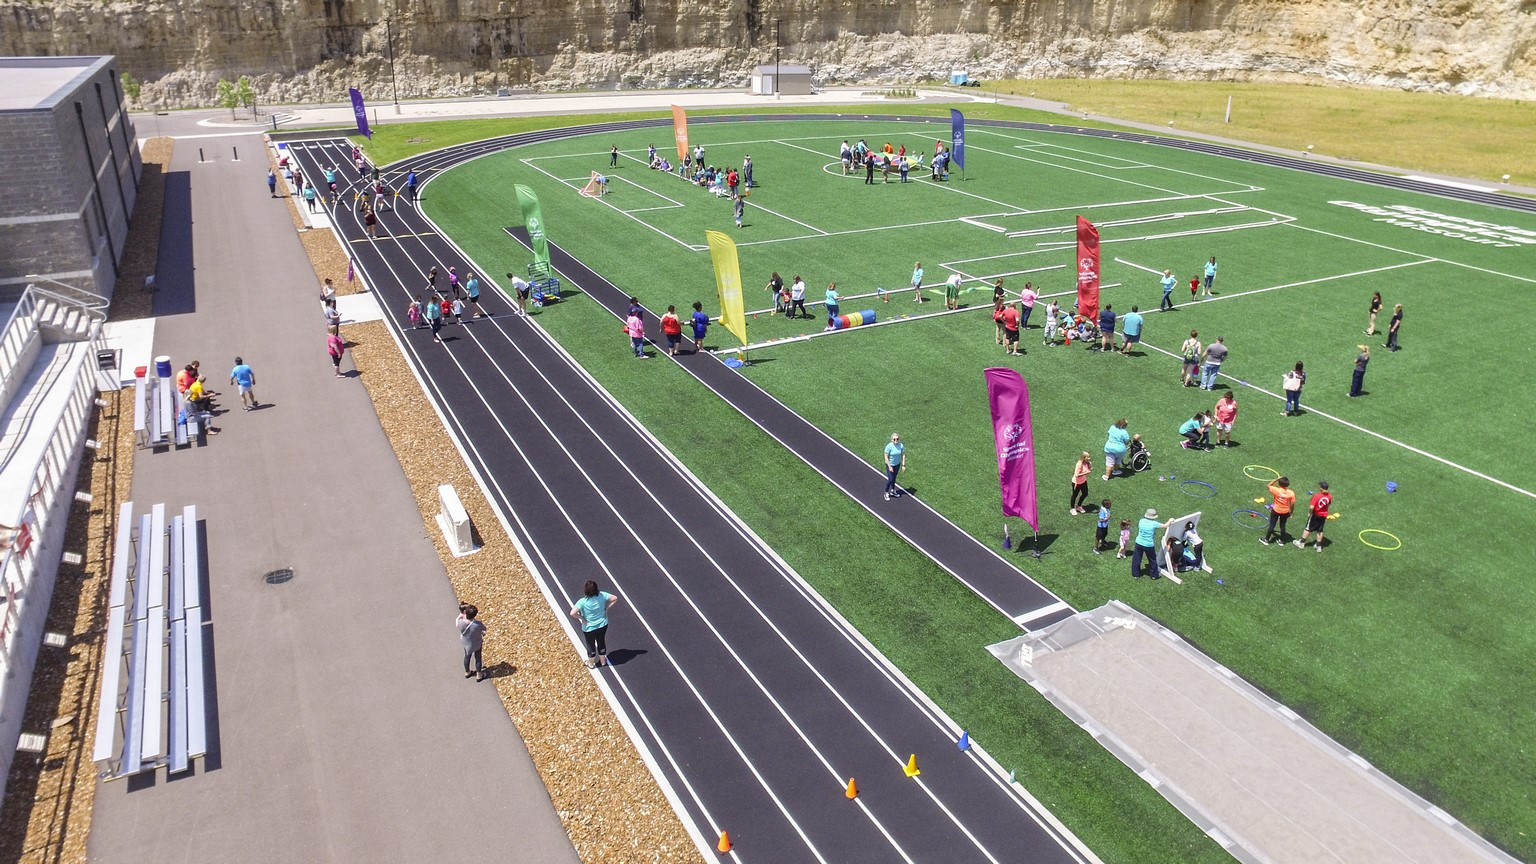 An aerial photo shows a group of Young Athletes and volunteers playing on the turf field at the Training for Life Campus